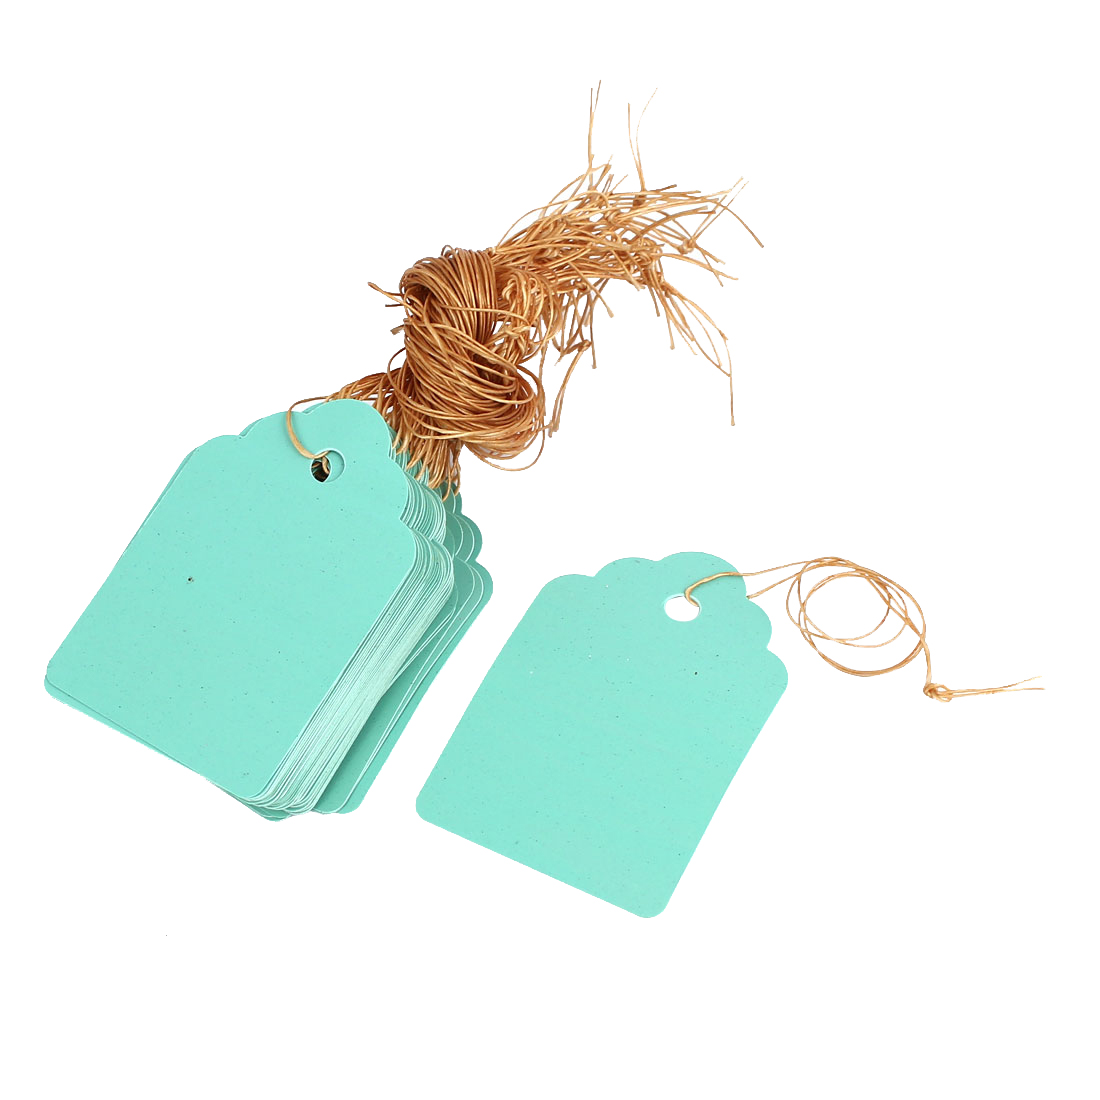 5cm x 3.4cm Plastic Nursery Garden Plant Seed Hanging Tag Label Marker Green 50Pcs